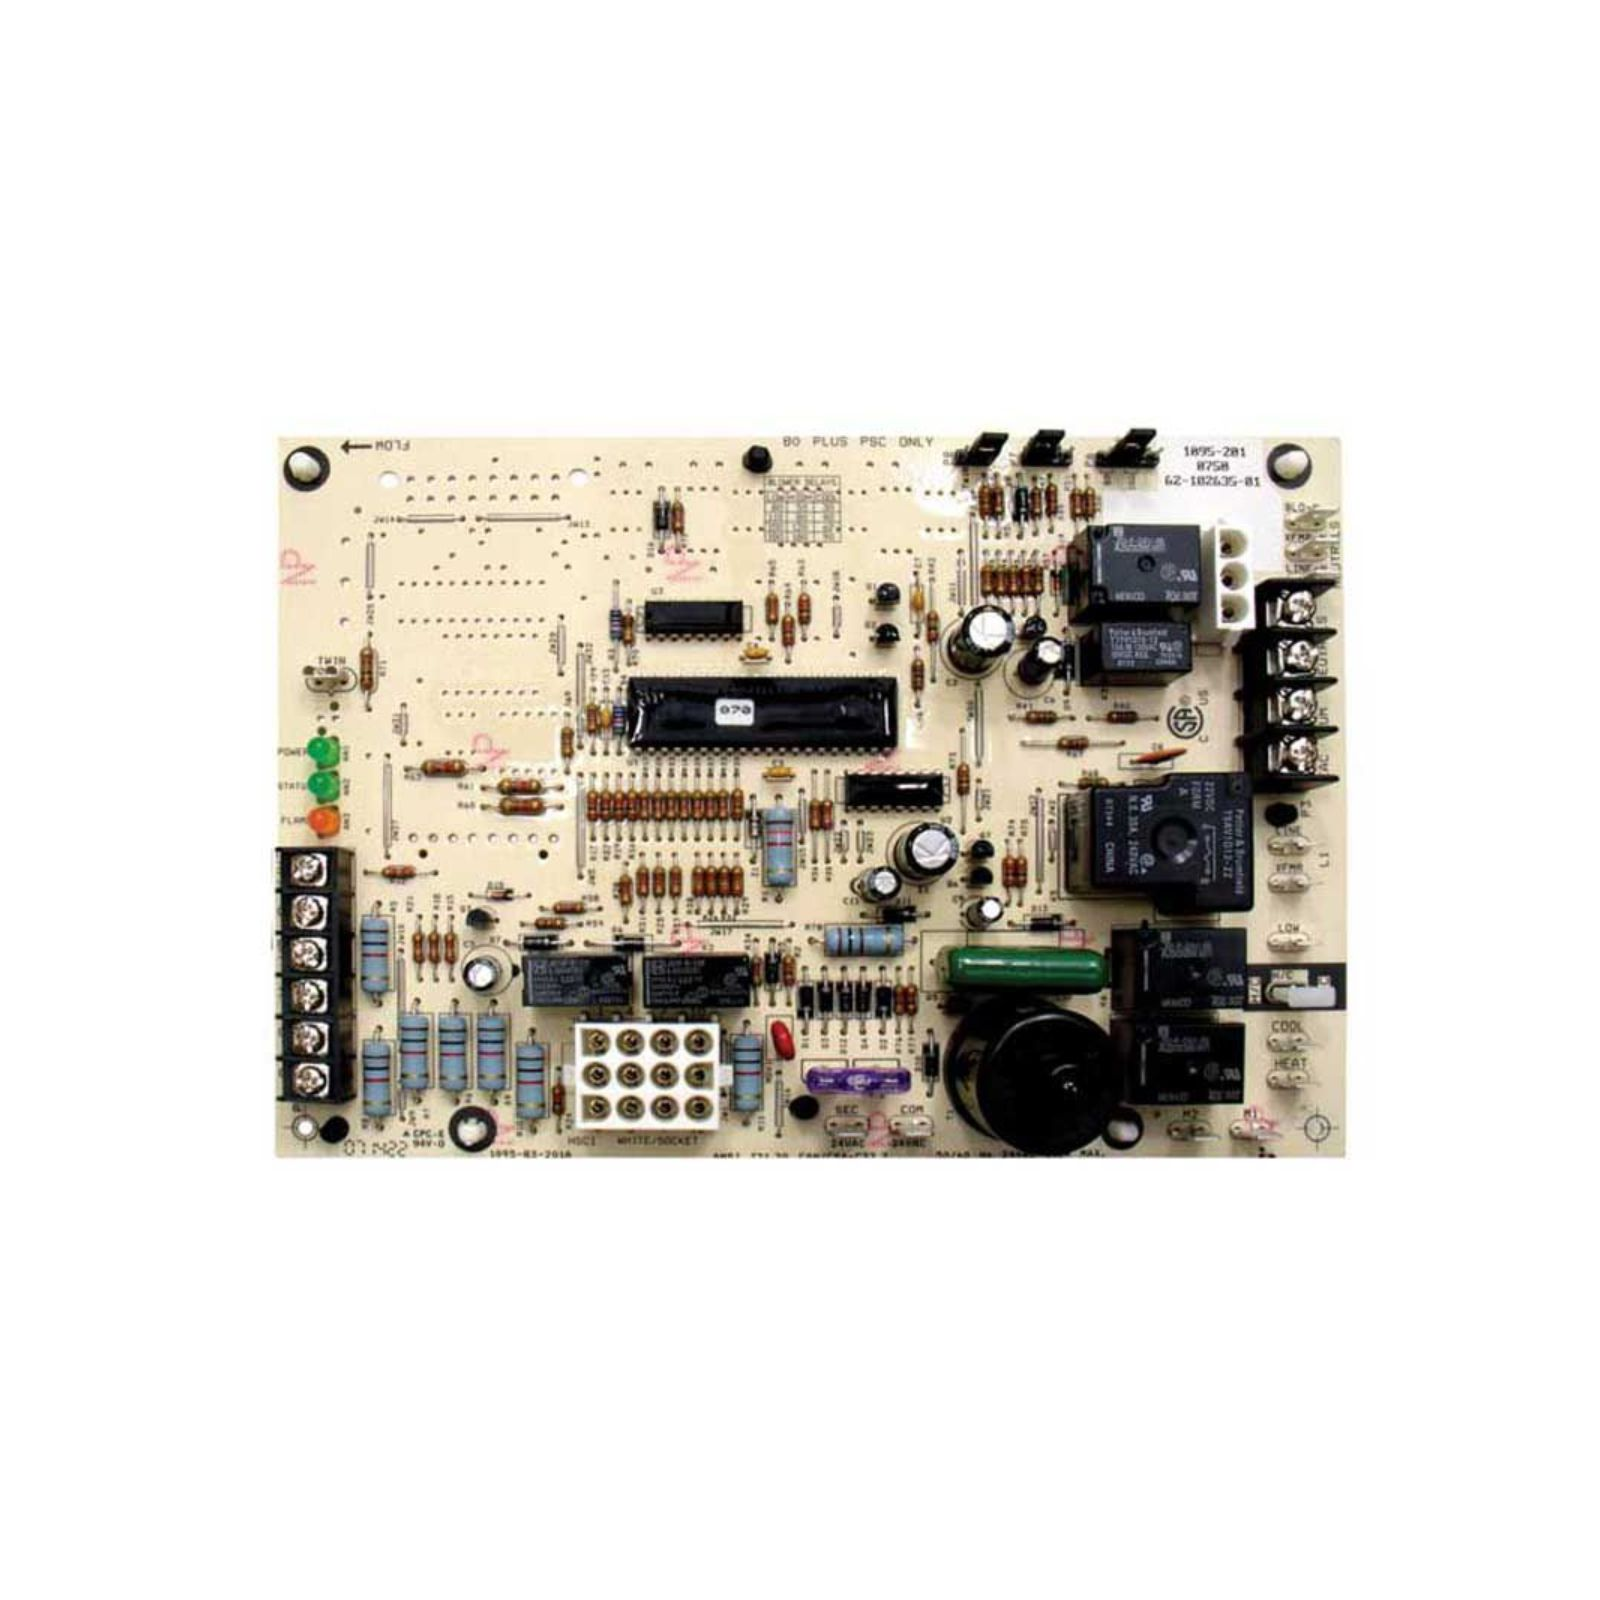 UTEC 62-102635-01 - Integrated Furnace Control Board (IFC)